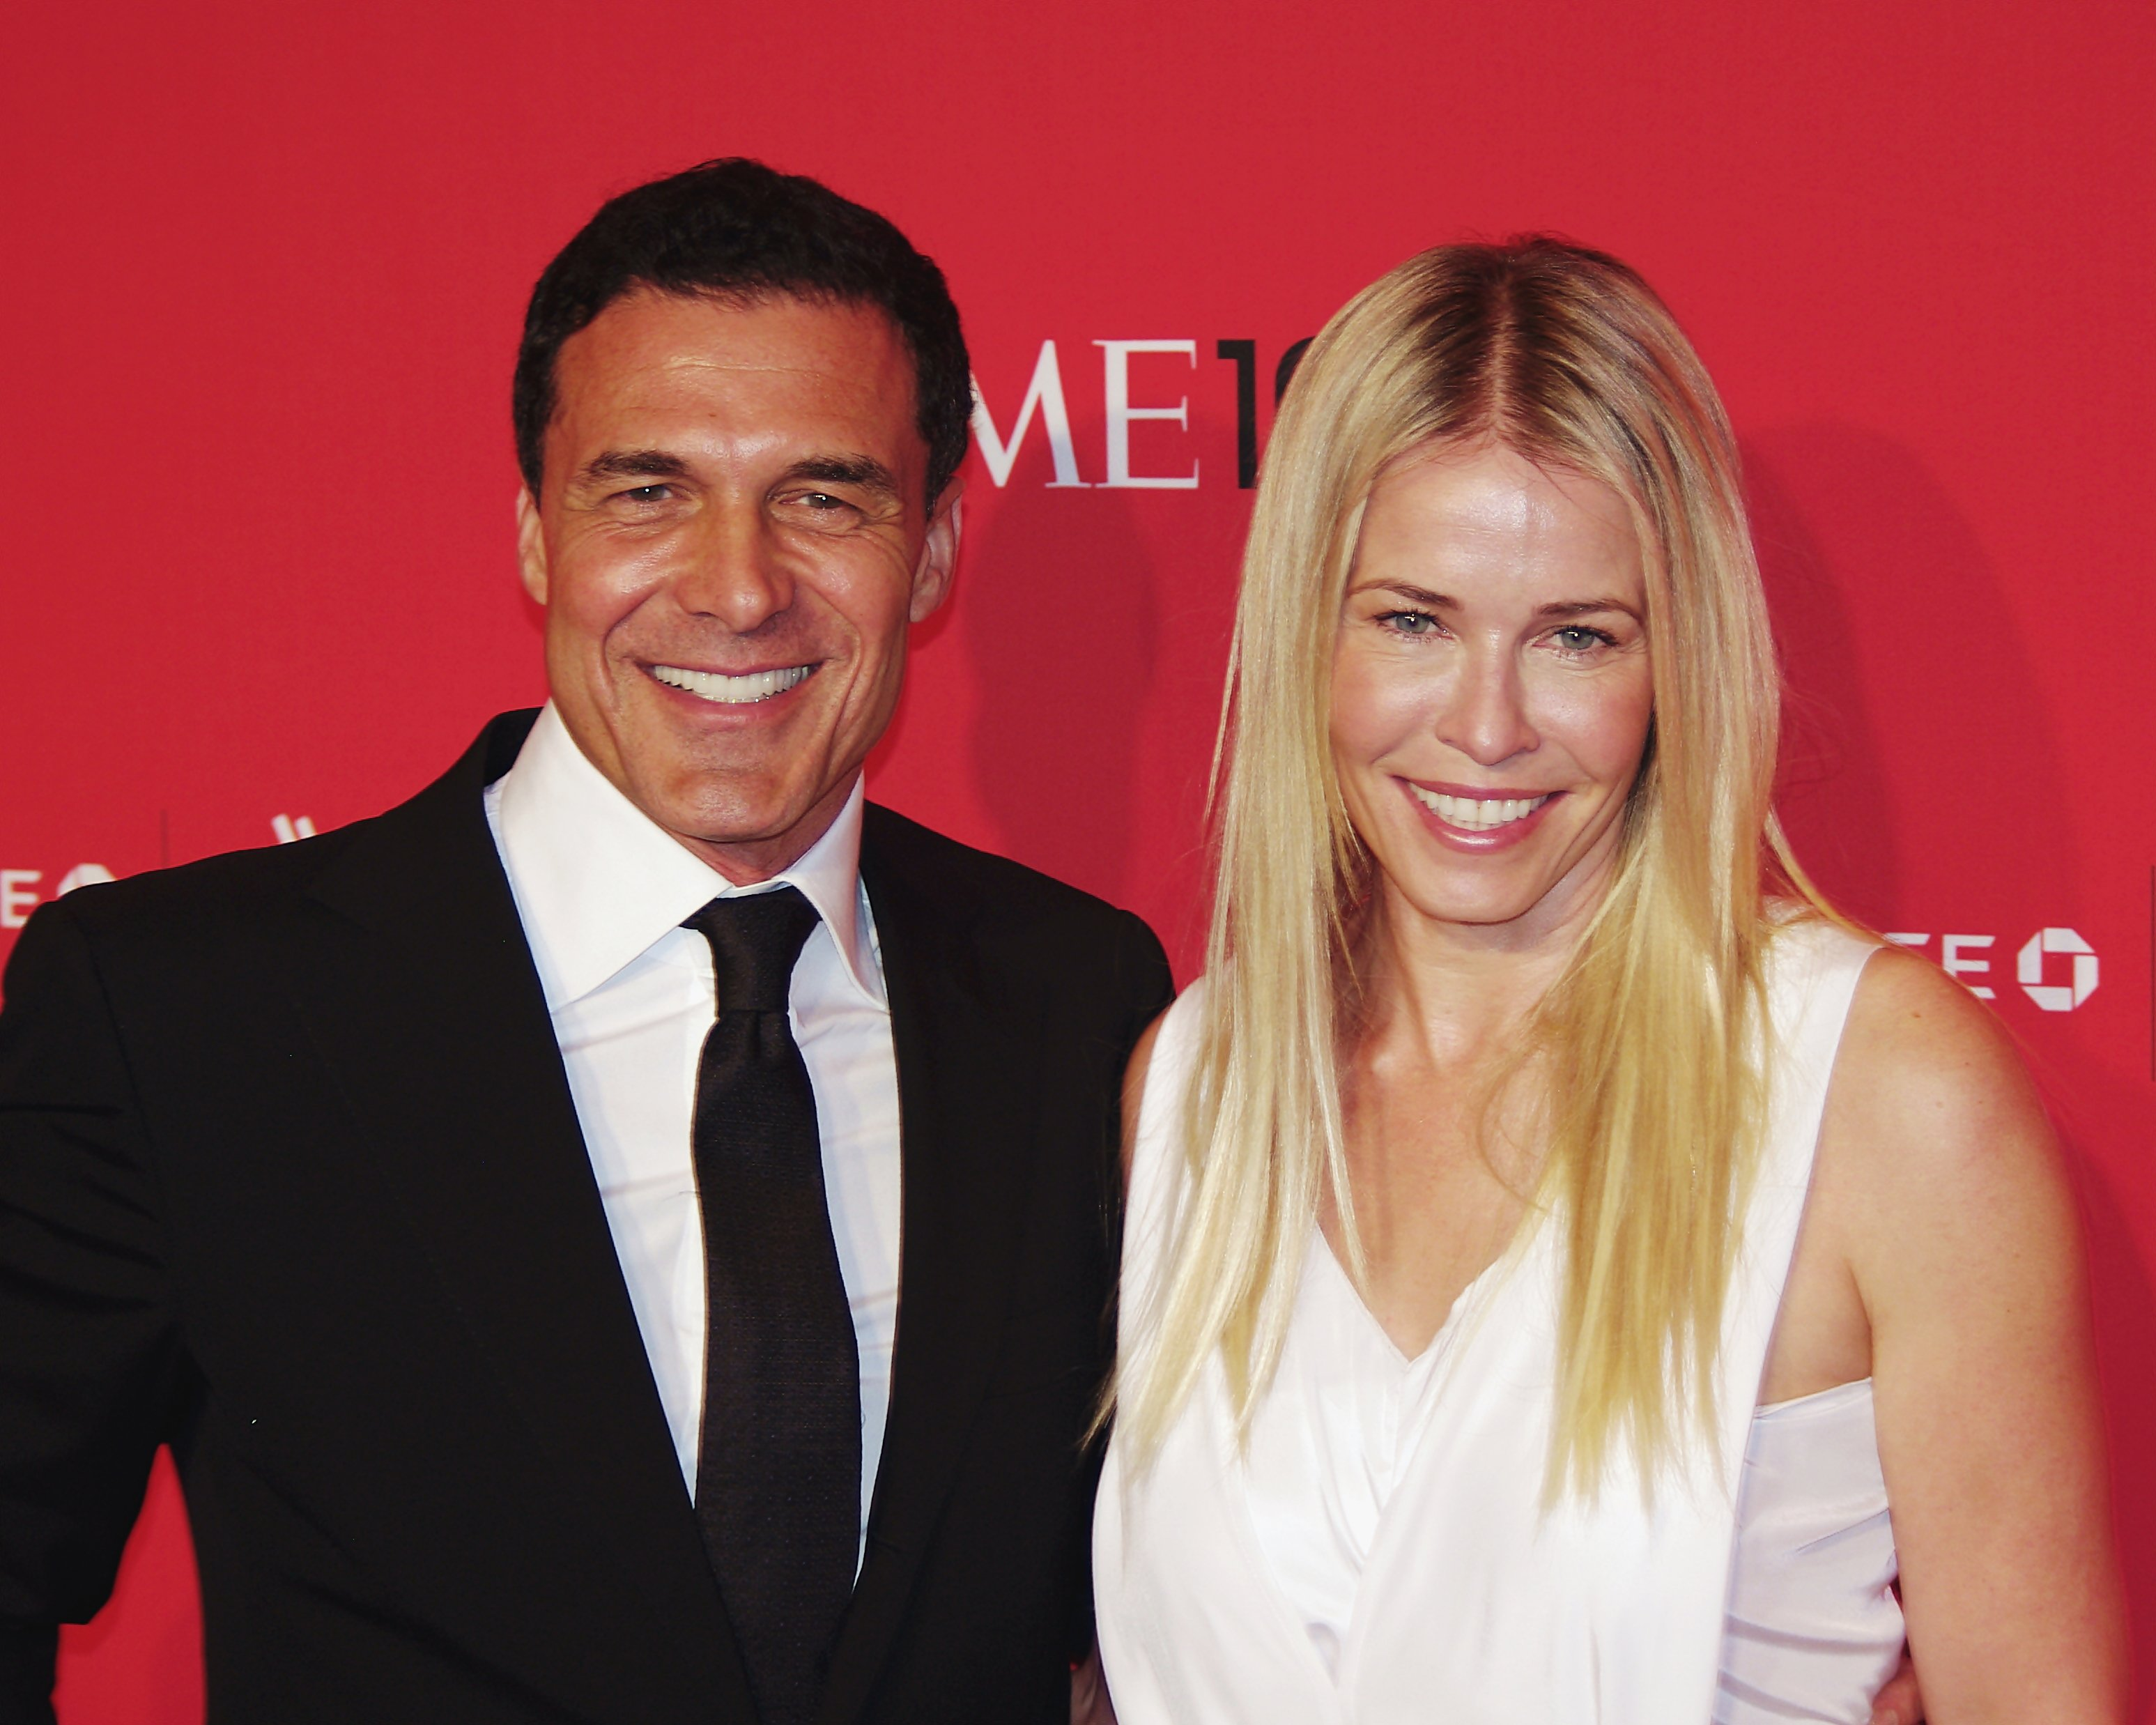 André Balazs with Chelsea Handler Image Source: Wikimedia Commons